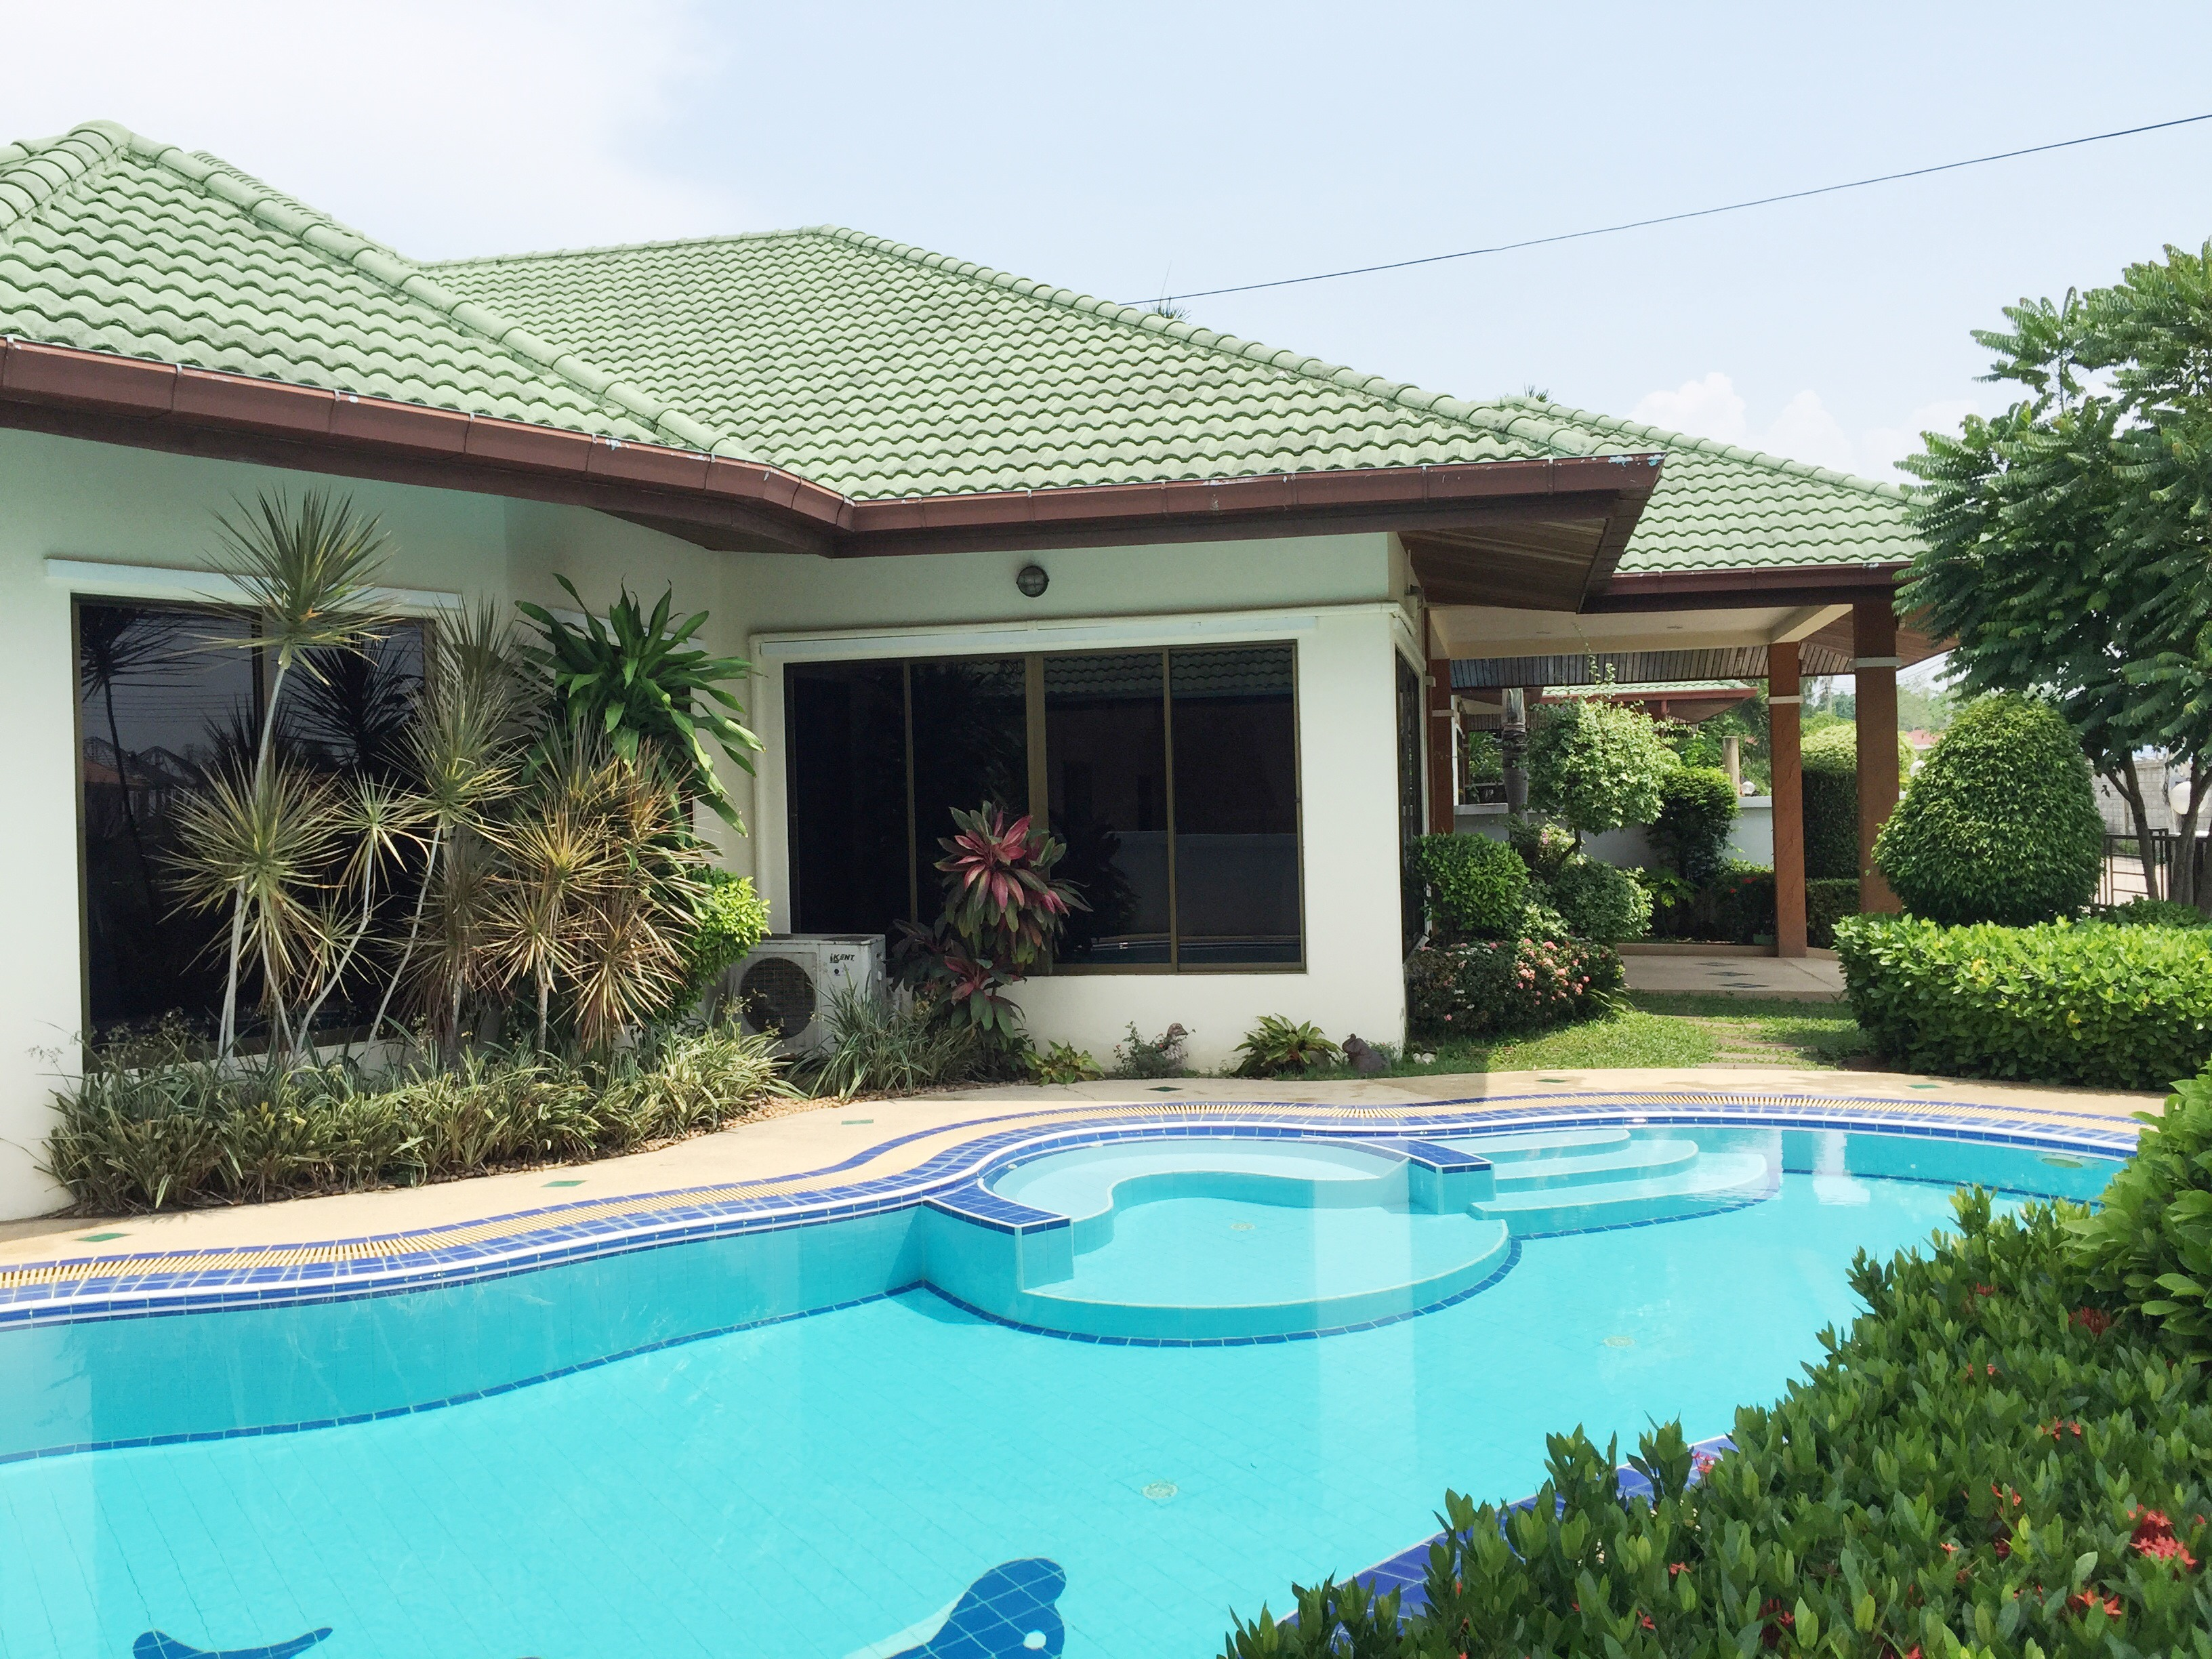 EP2203 – Detached Pool House